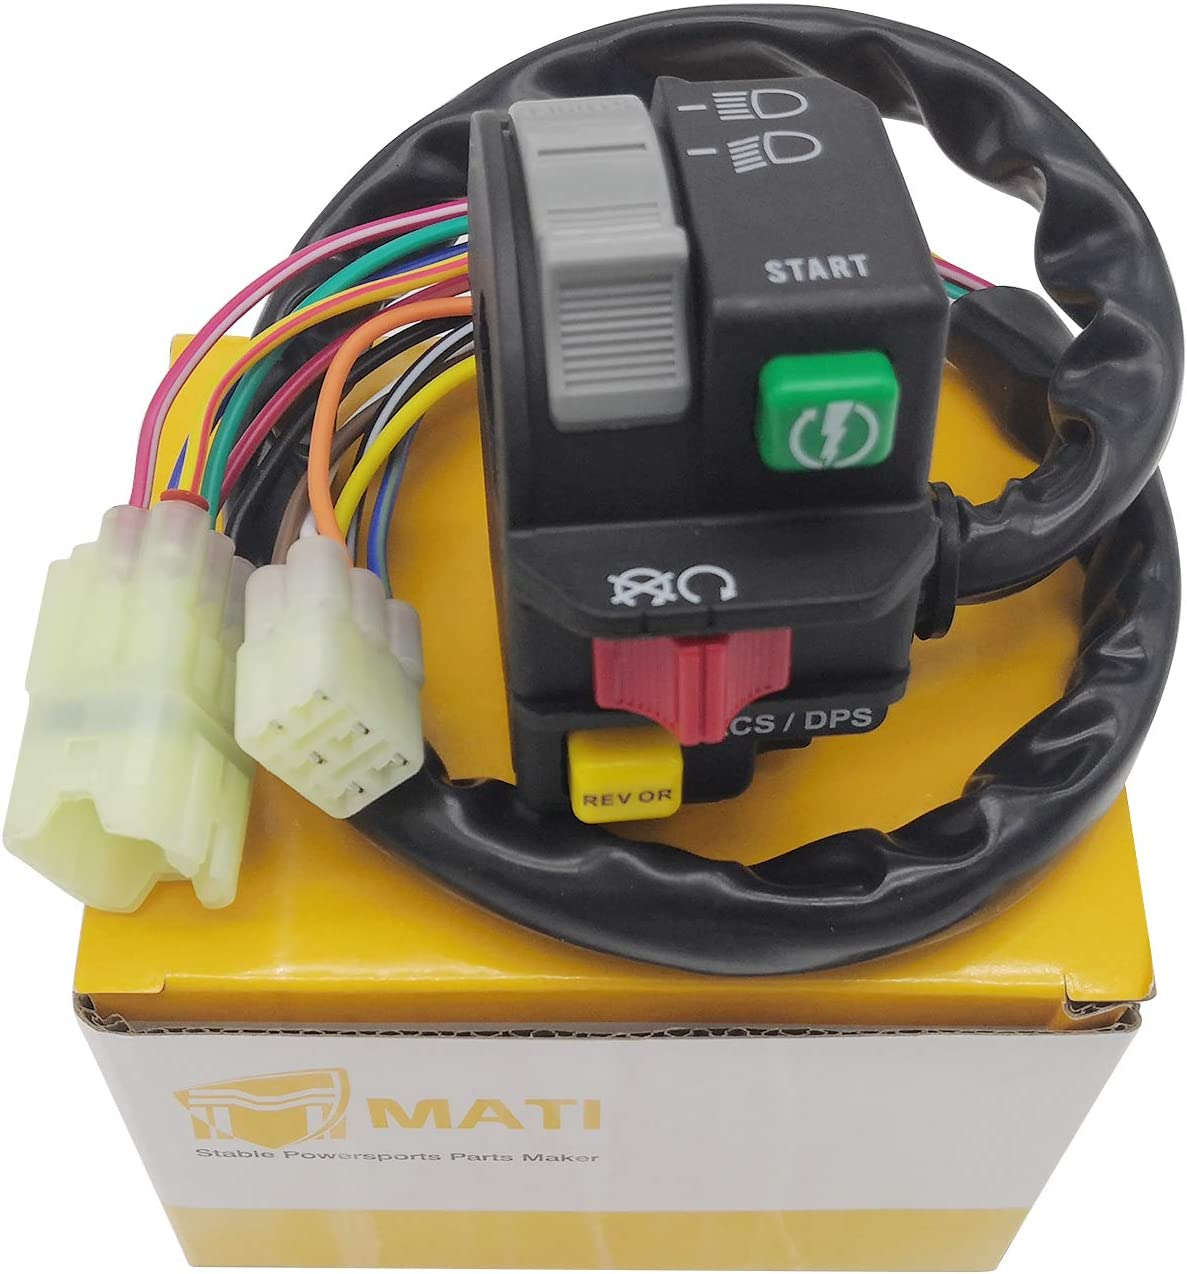 M MATI Left Handlebar Control Switch Start Run Off Headlight Reverse ACS DPS for Can-Am ATV Outlander 400 500 650 800 1000 6X6 Renegade 800 1000 XXC 703500920